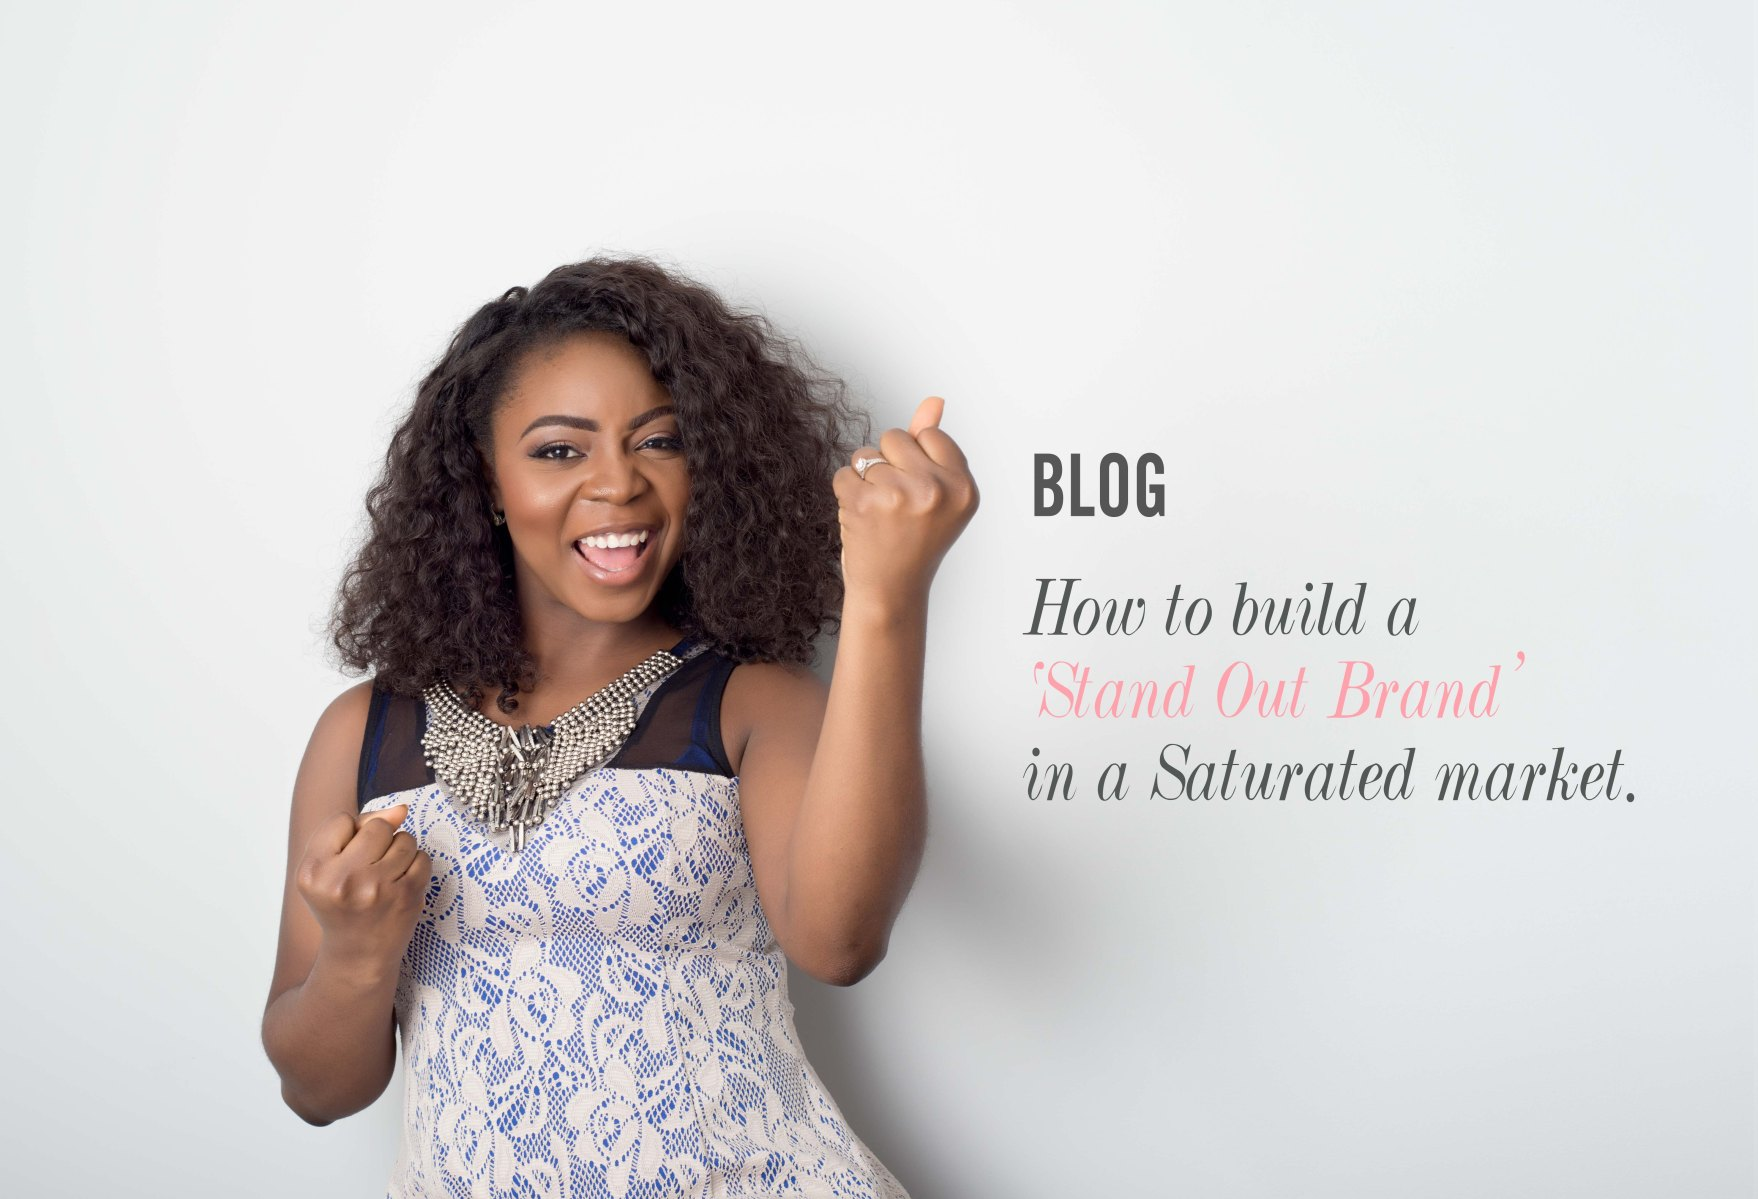 How to build a stand out brand in a Saturated market. Branding photography